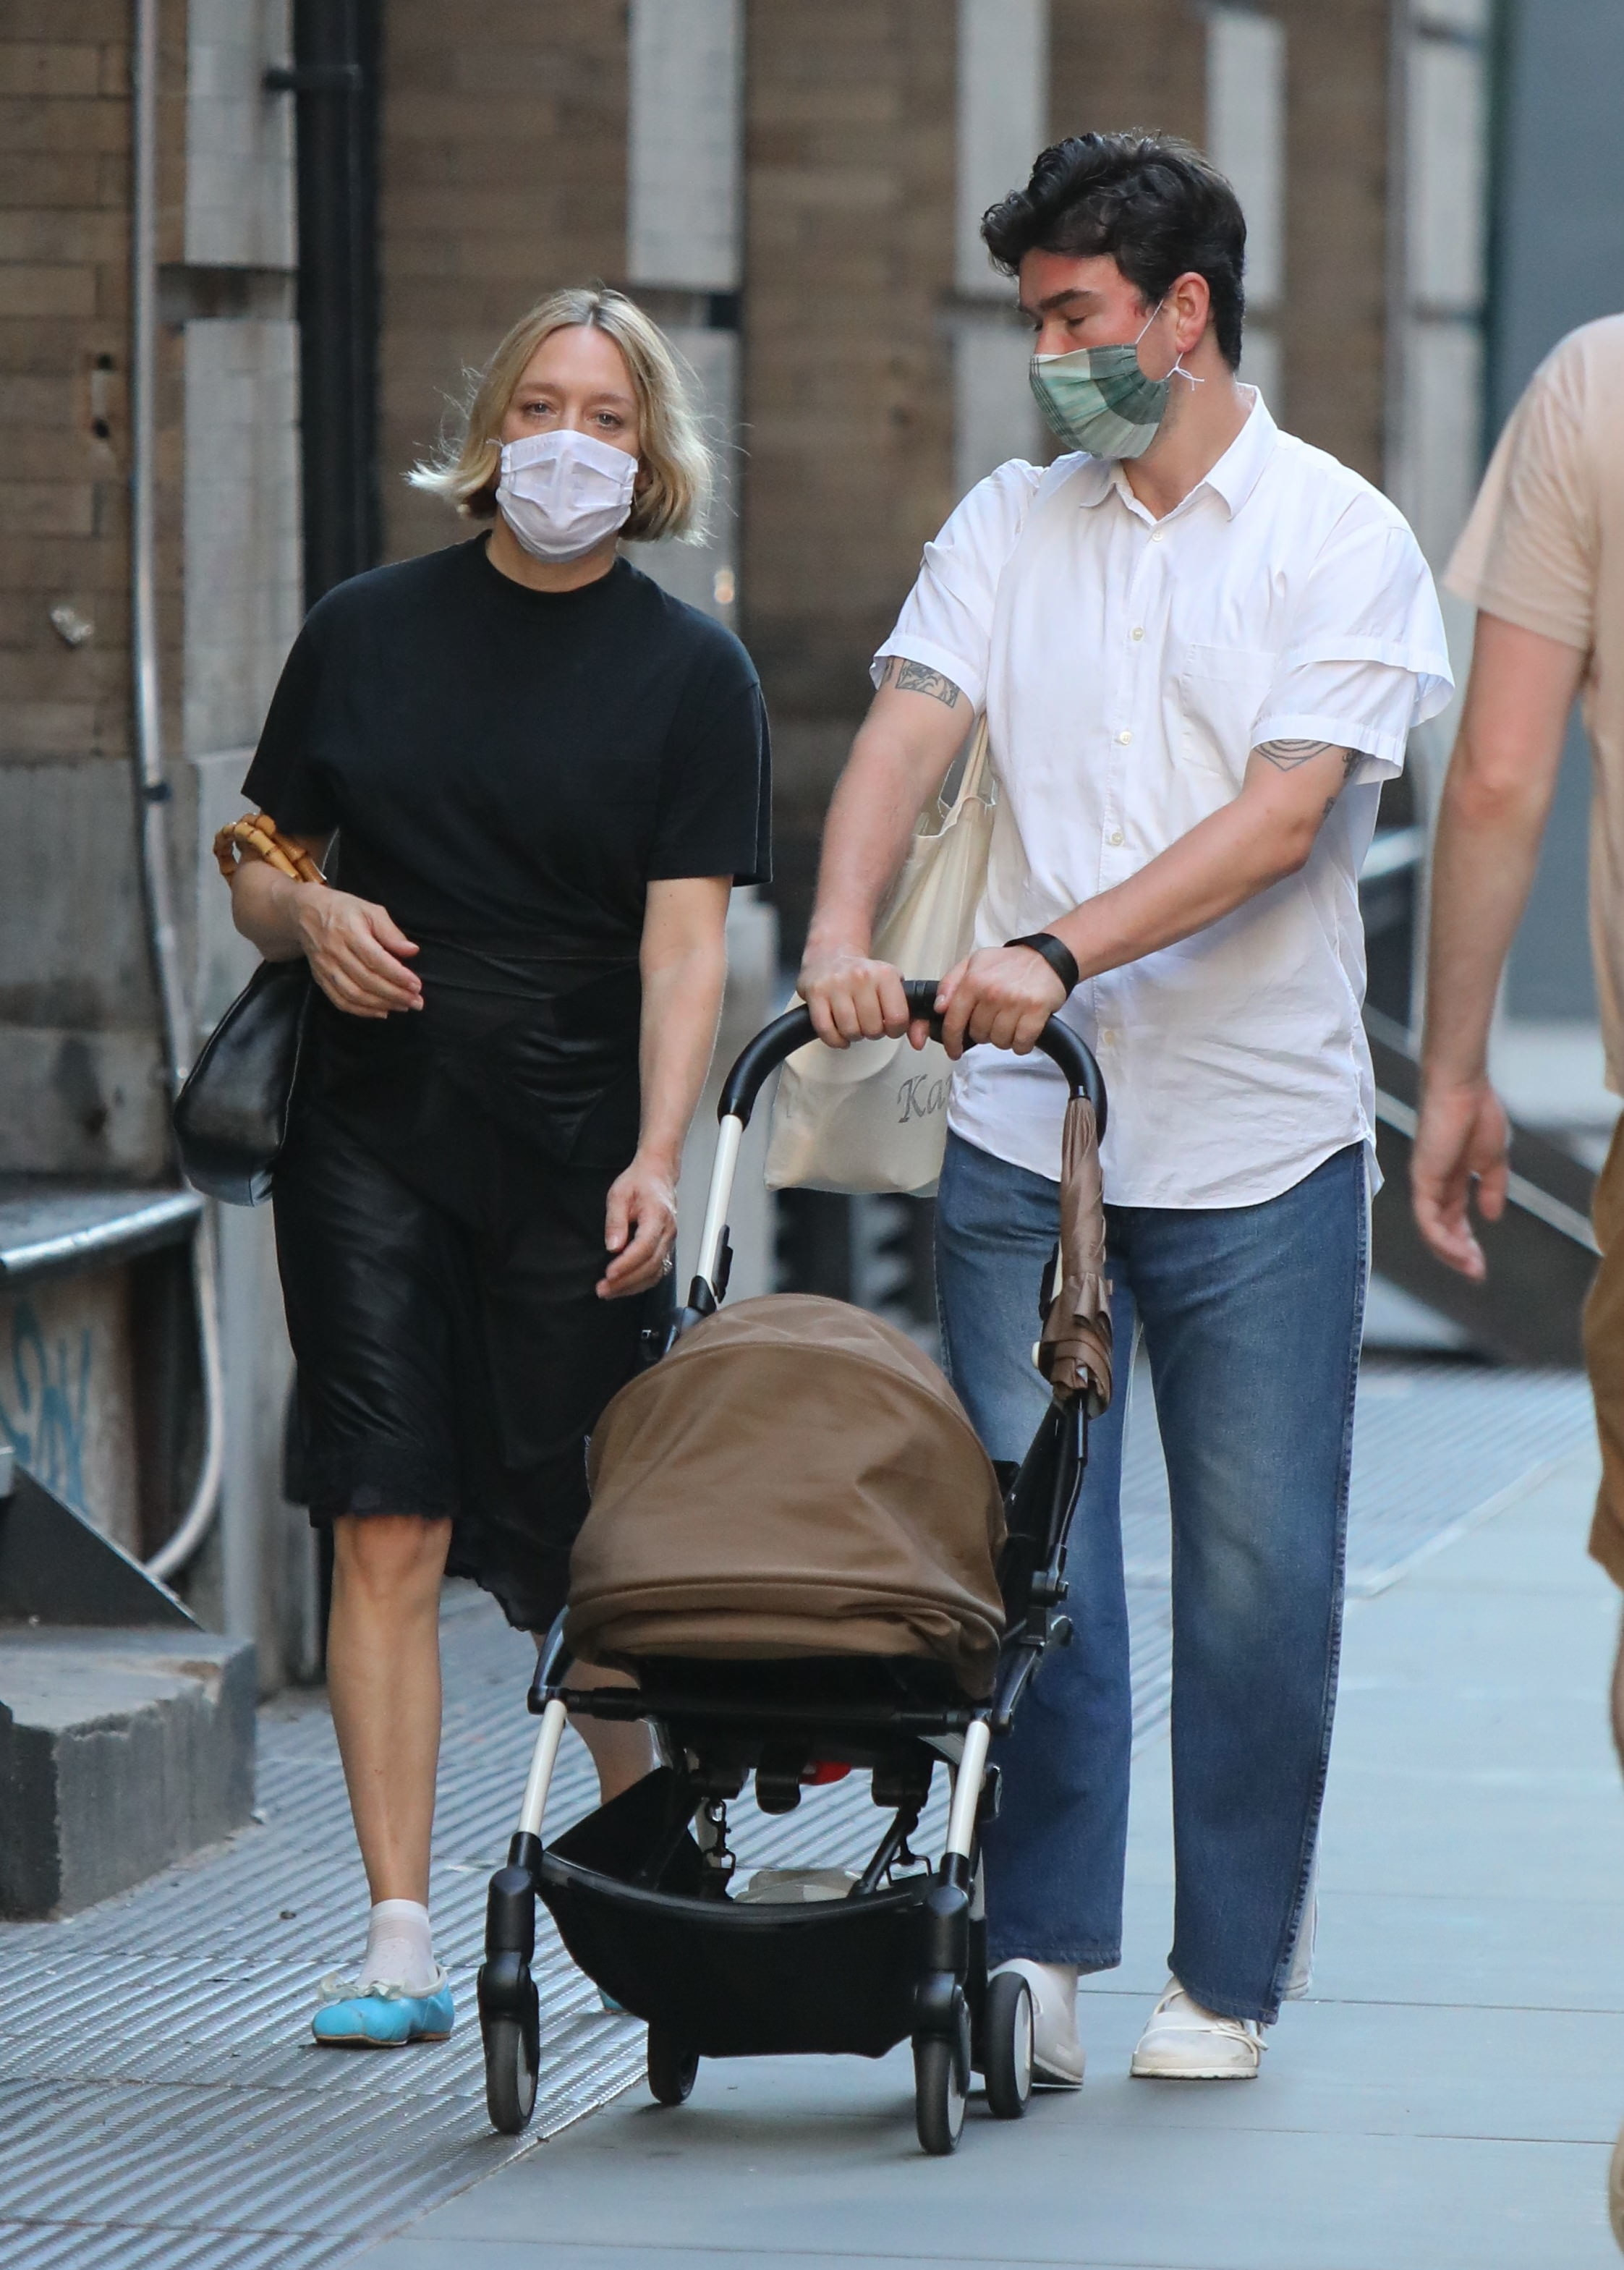 Chloe Sevigny and Sinisa Mackovic are seen on August 11, 2020 in New York City.